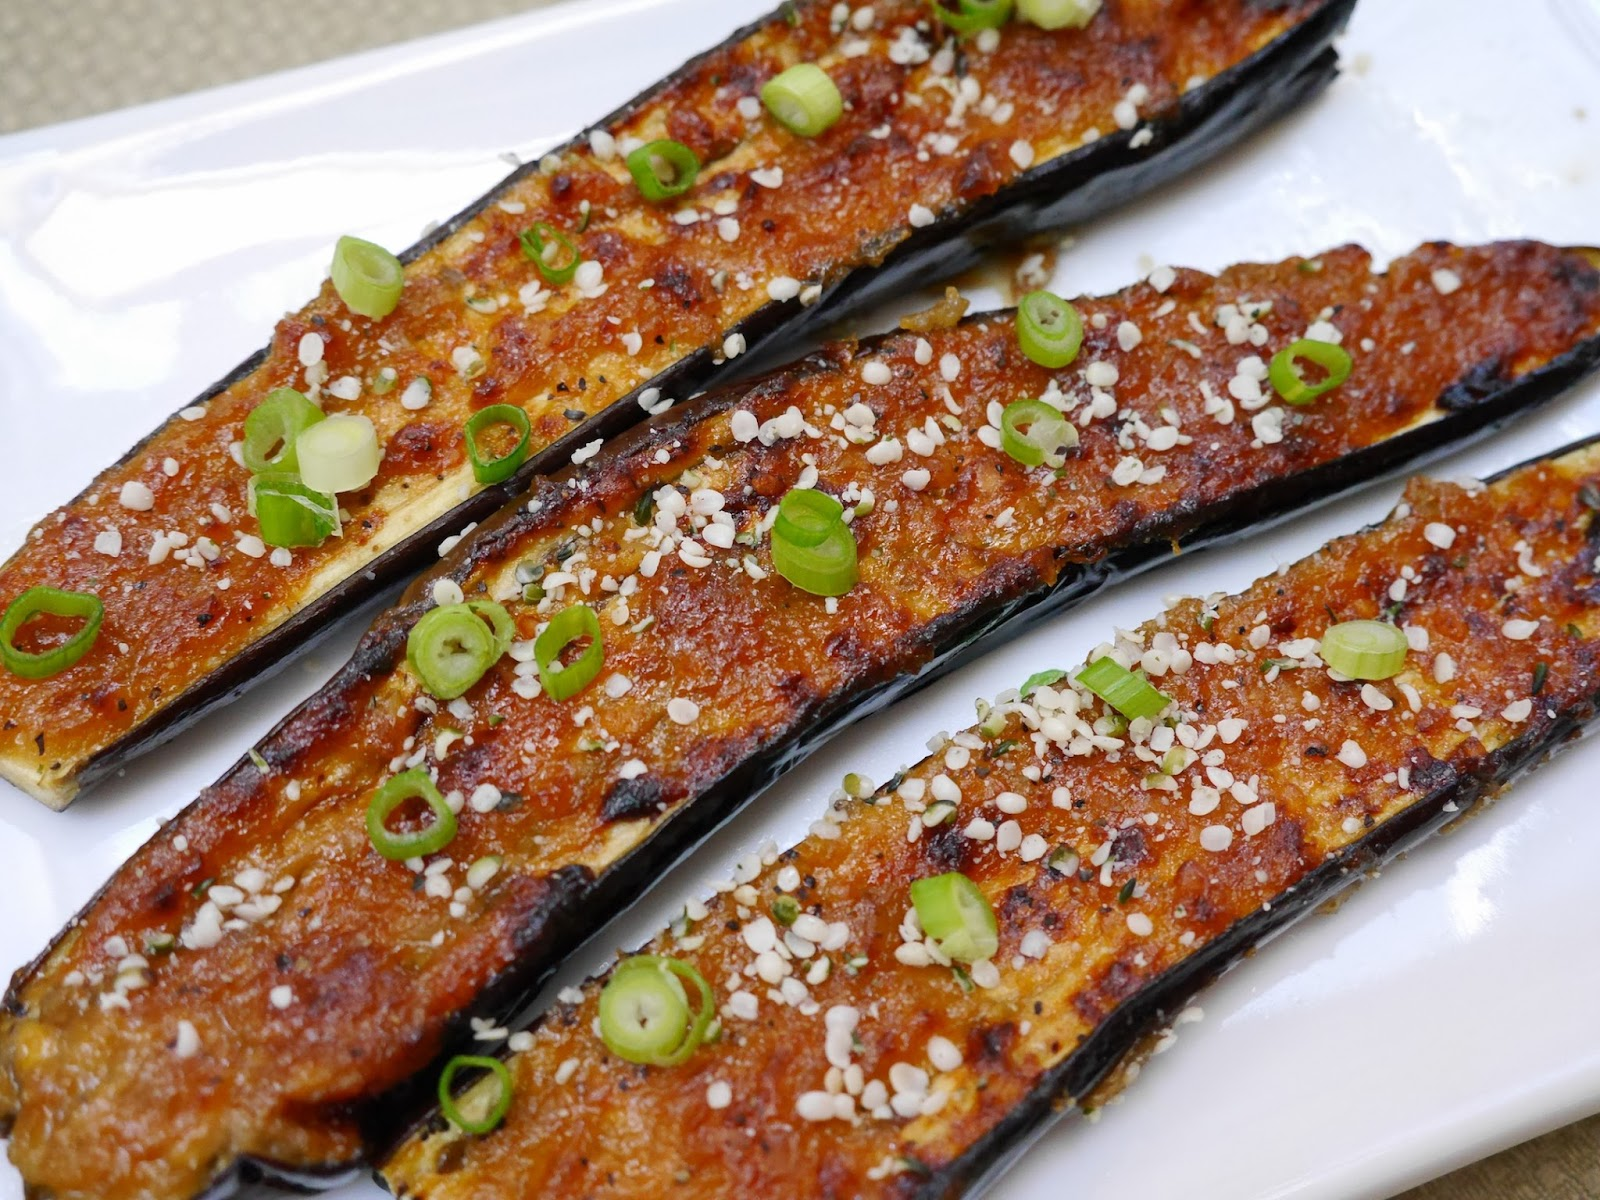 Foods For Long Life: Miso And Ginger Glazed Eggplant - Vegan And ...